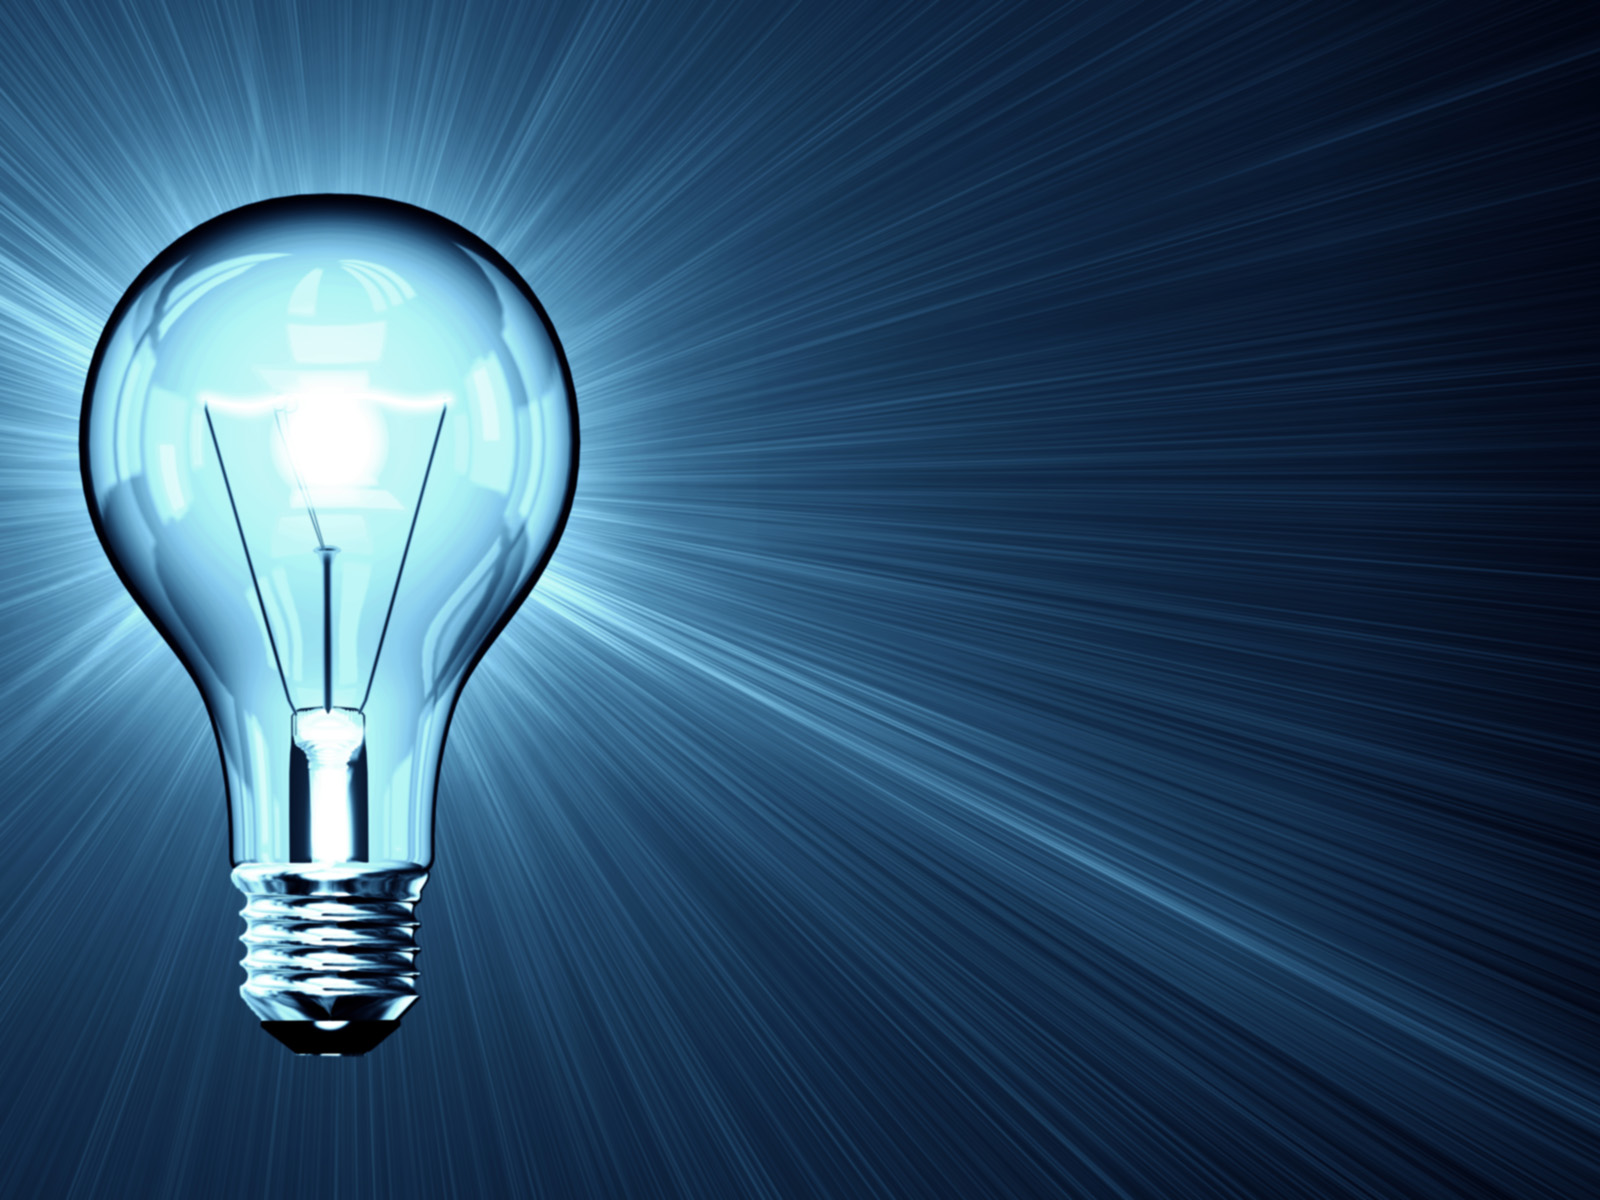 Blue Bulb Light PPT Backgrounds